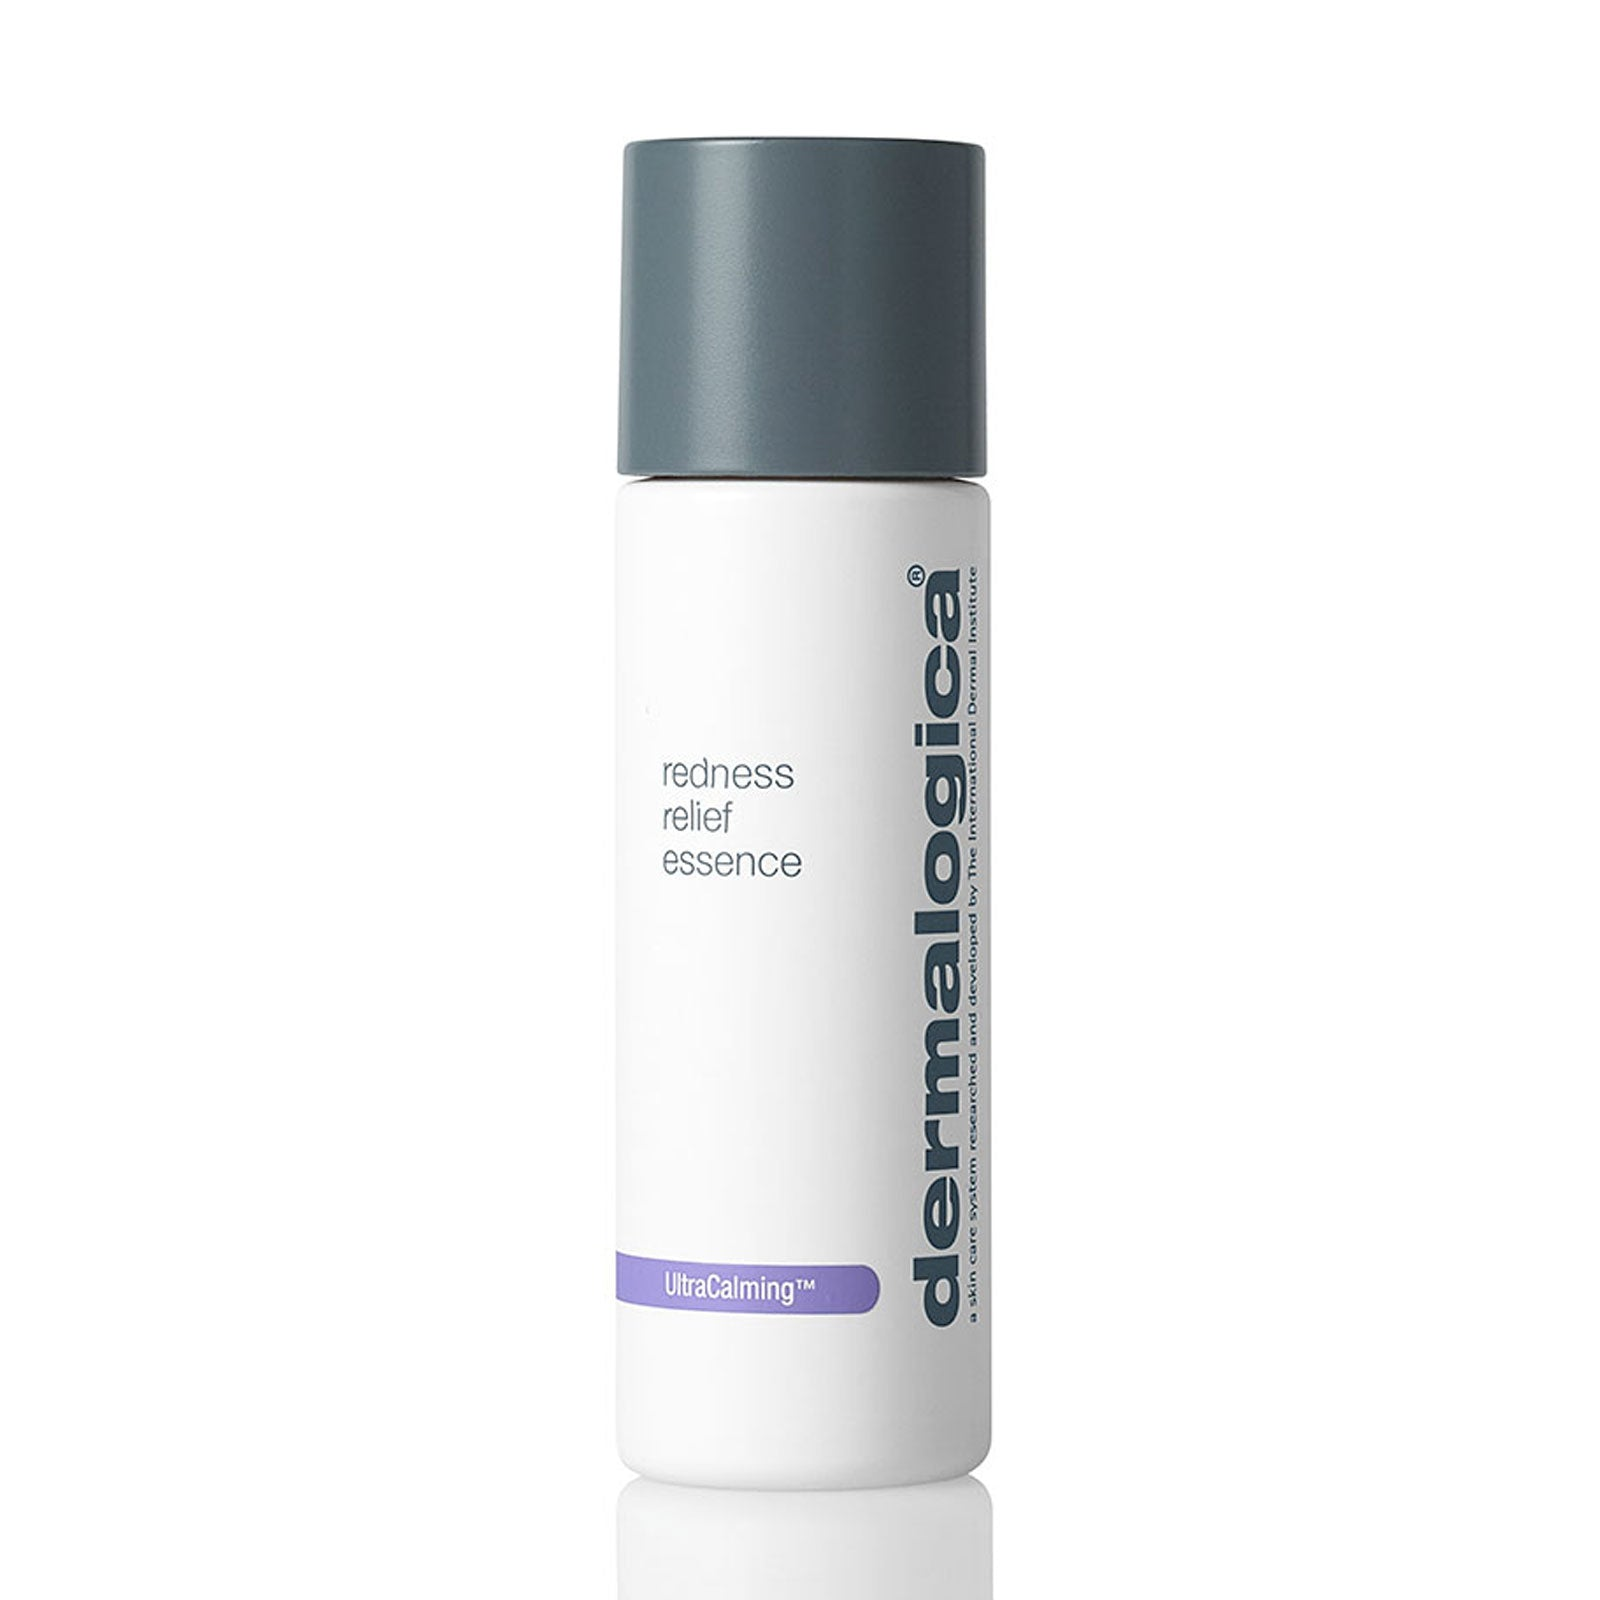 Dermalogica Redness Relief Essence Travel Size 50ml